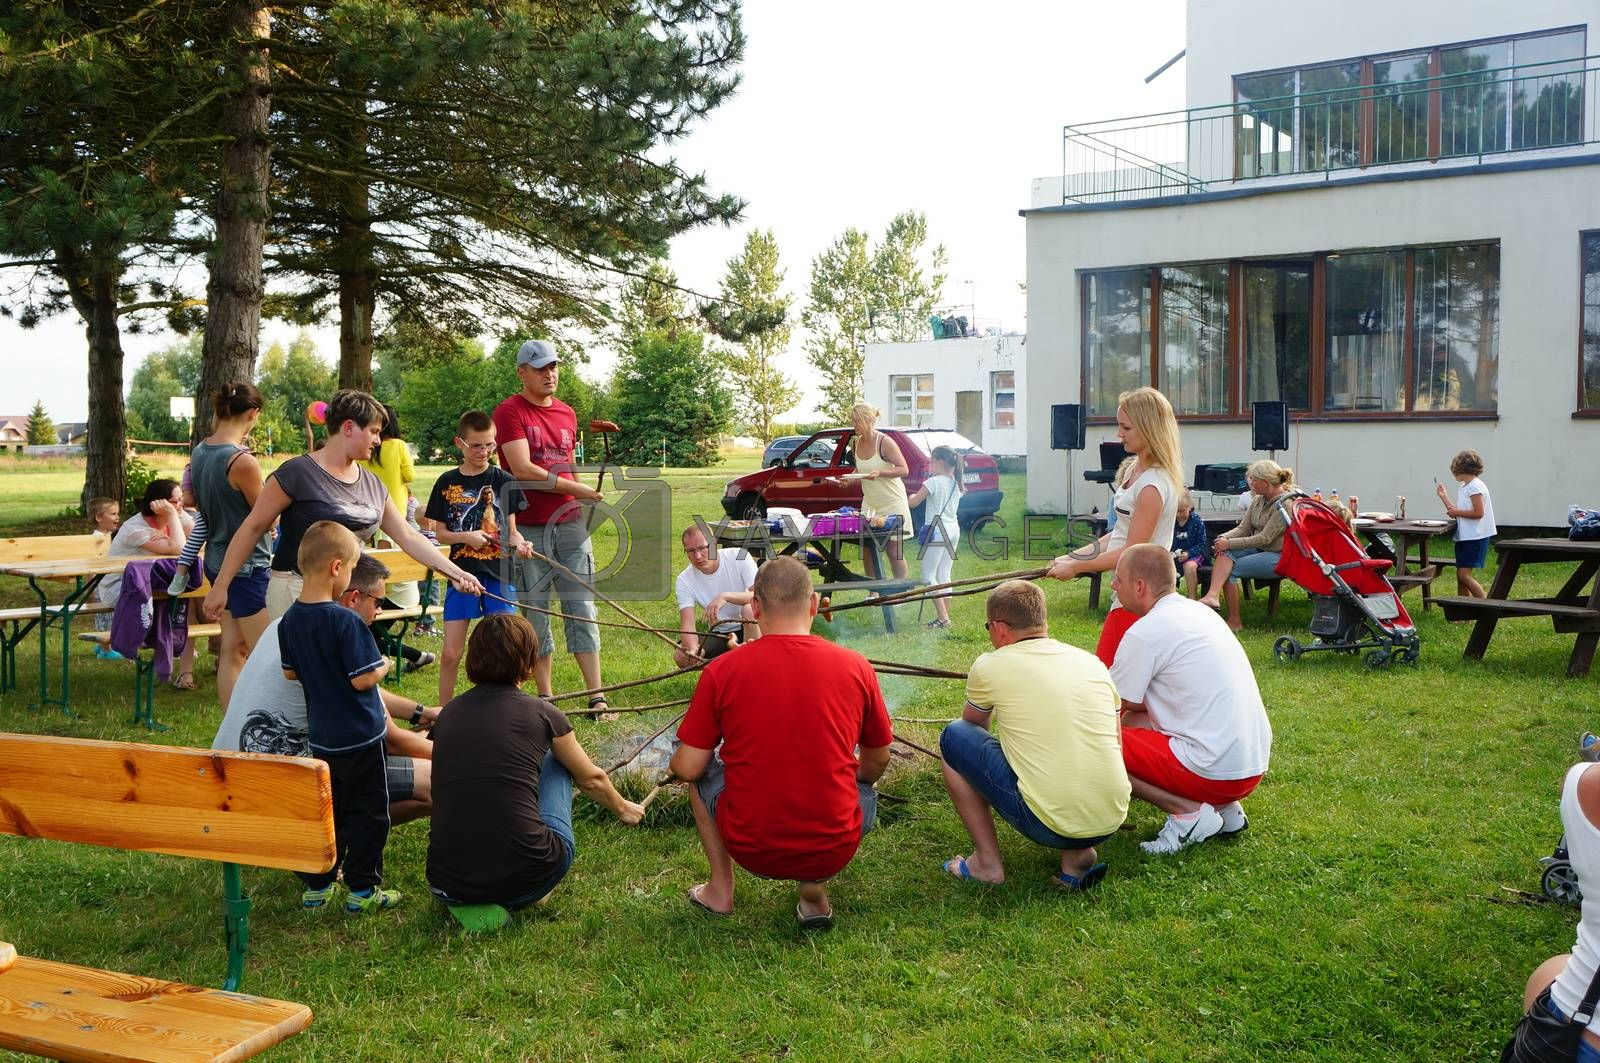 SIANOZETY, POLAND - JULY 22, 2015: People sitting around a fire place and grilling sausages at a barbecue event